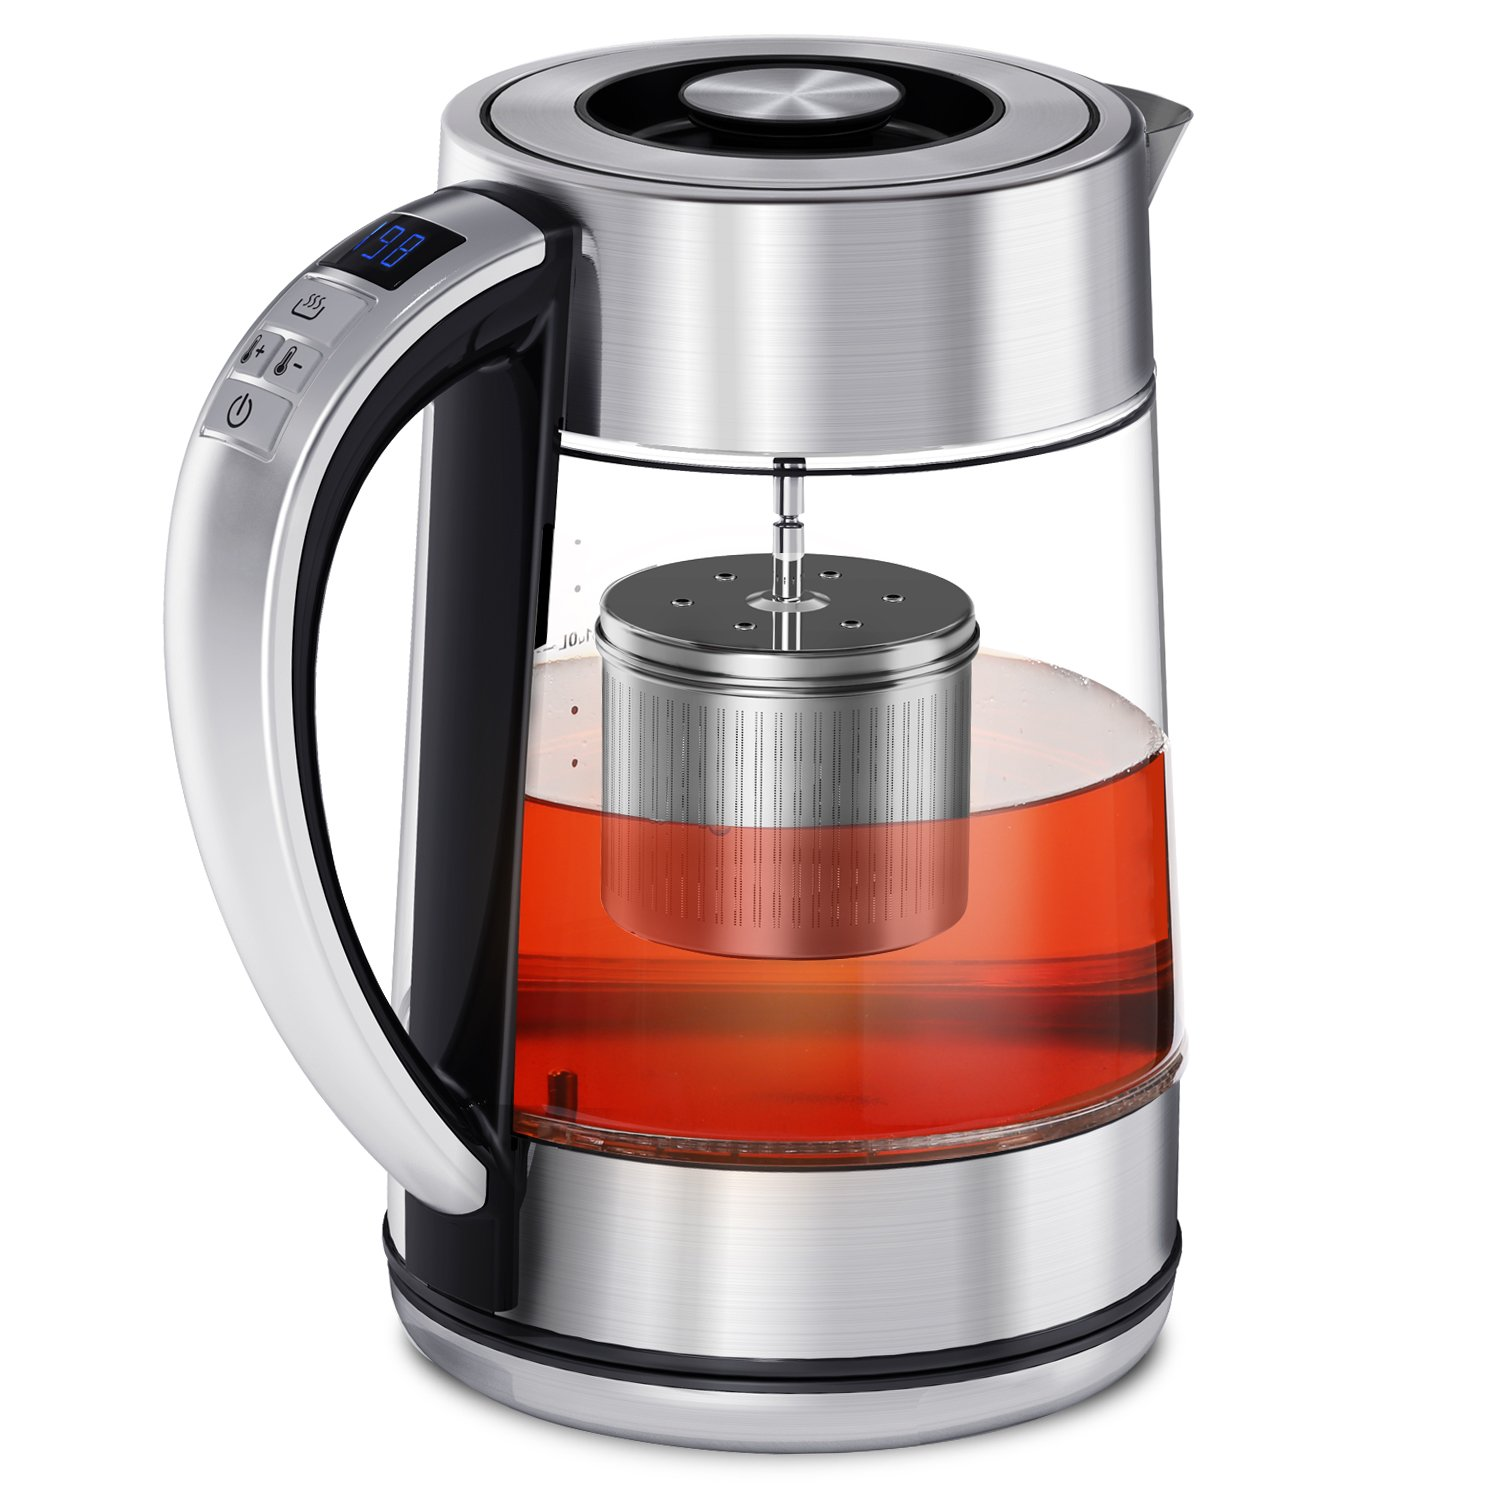 CISNO 2 in 1 Electric Tea Kettle With Infuser, Glass and Stainless Steel Body with Variable Temperature Control, Cordless, 1500W 1.7L (BPA-Free) Perfect for Loose Leaf Tea, Blooming Tea